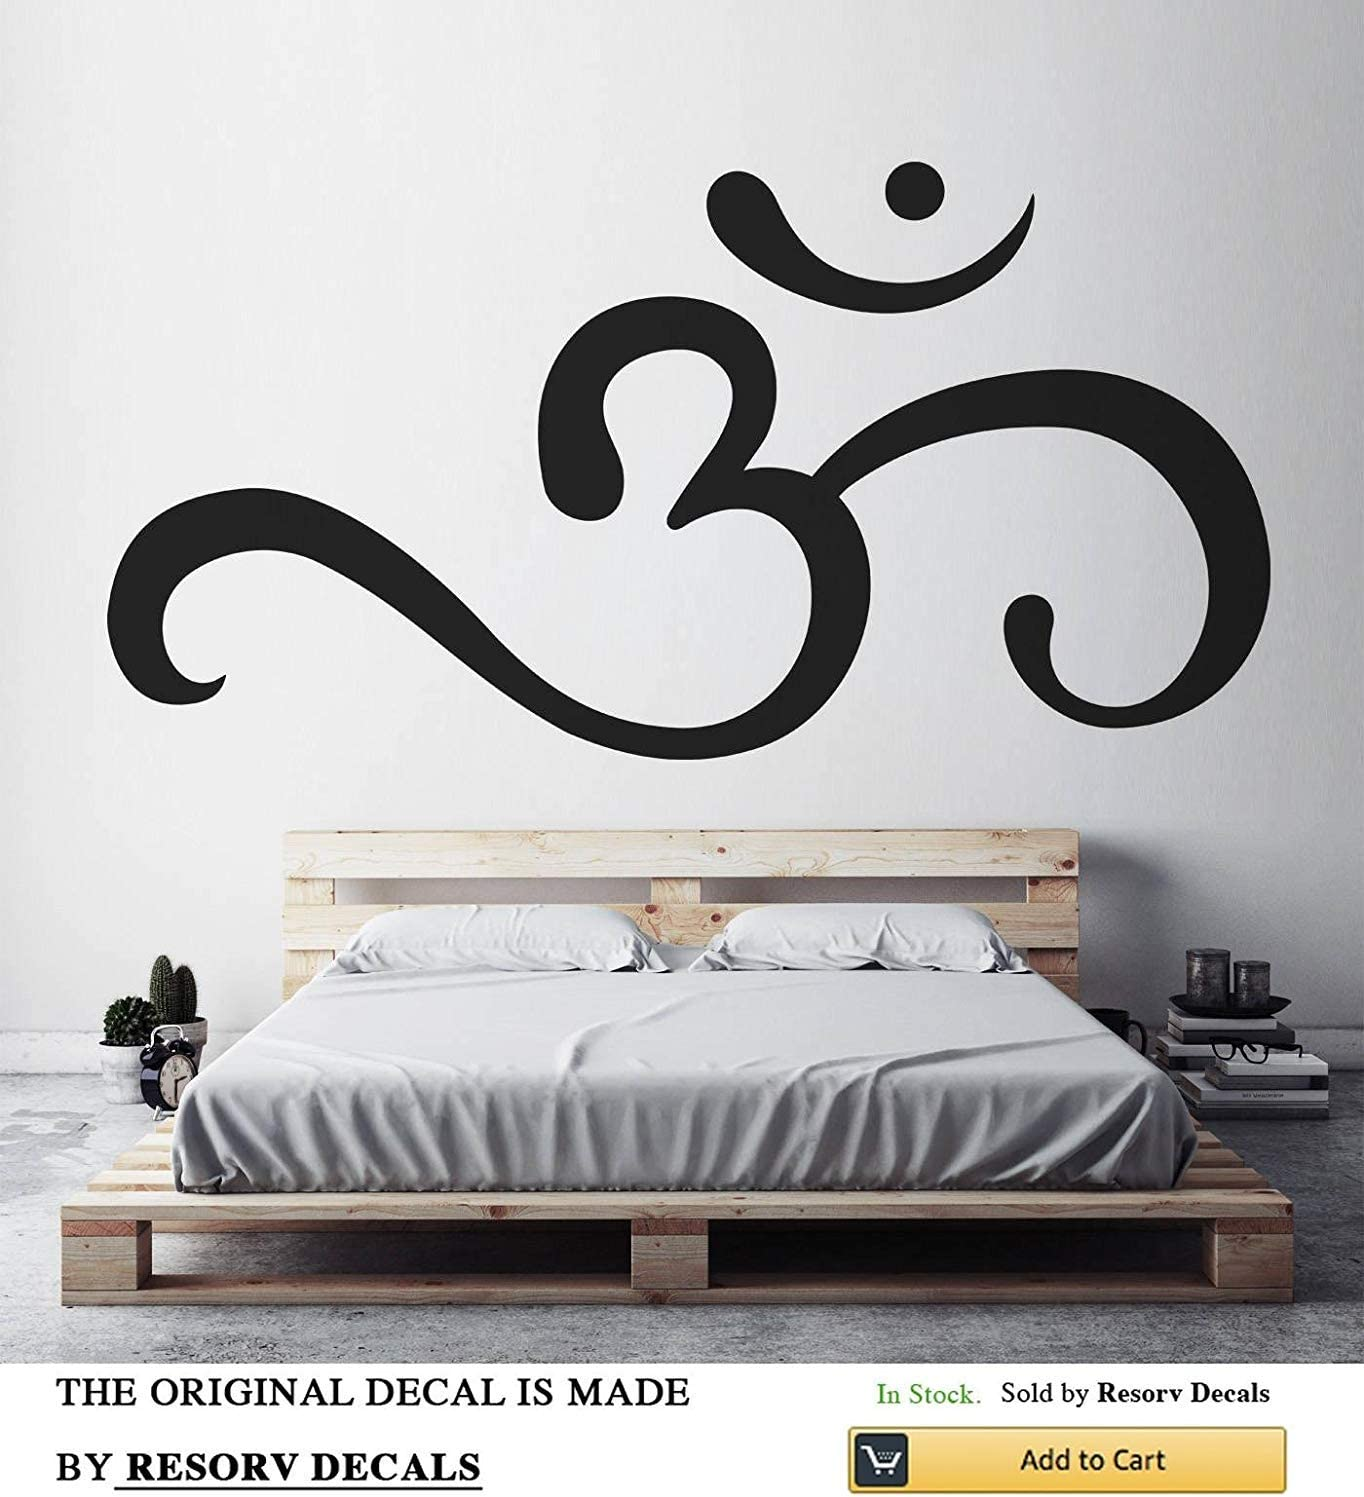 Om Symbol Inspirational Wall Decals - Removable Decor Art Stickers for Bedroom Living Room Kitchen - Buddhist Decal Sticker - Home Yoga Studio Decor for Women Men Girls Spiritual Symbol w20 h40